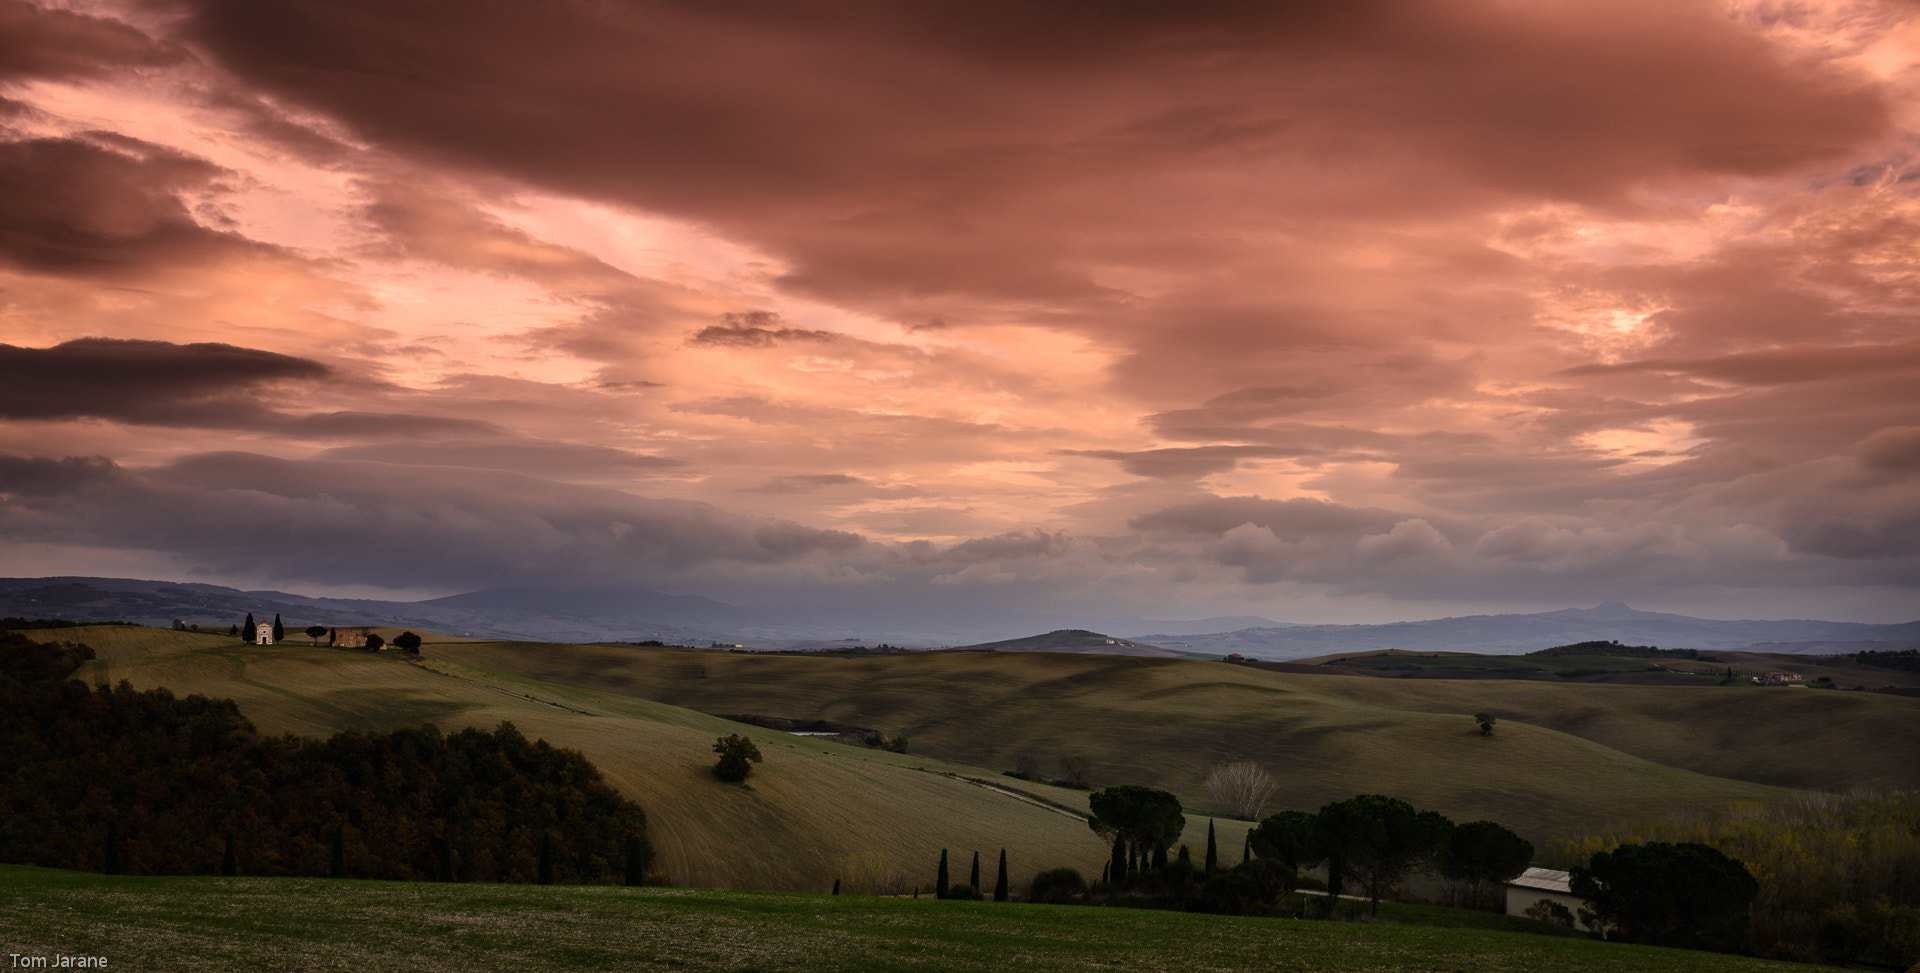 Photograph Tuscan landscape by Tom Jarane on 500px